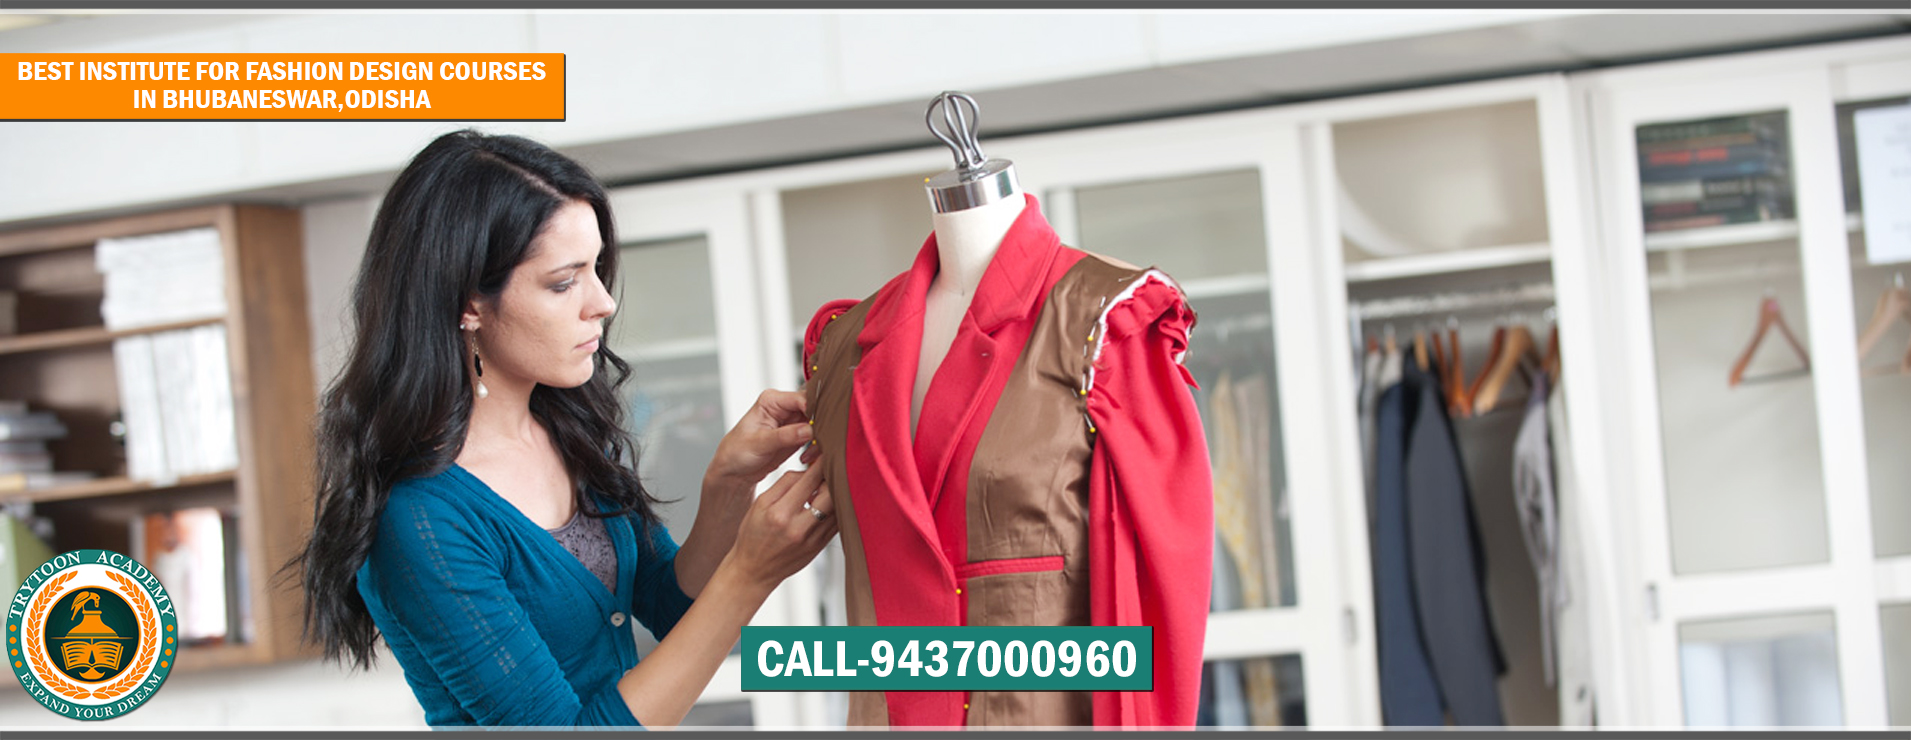 Fashion designing courses provide best fashion institute in Bhubaneswar odisha